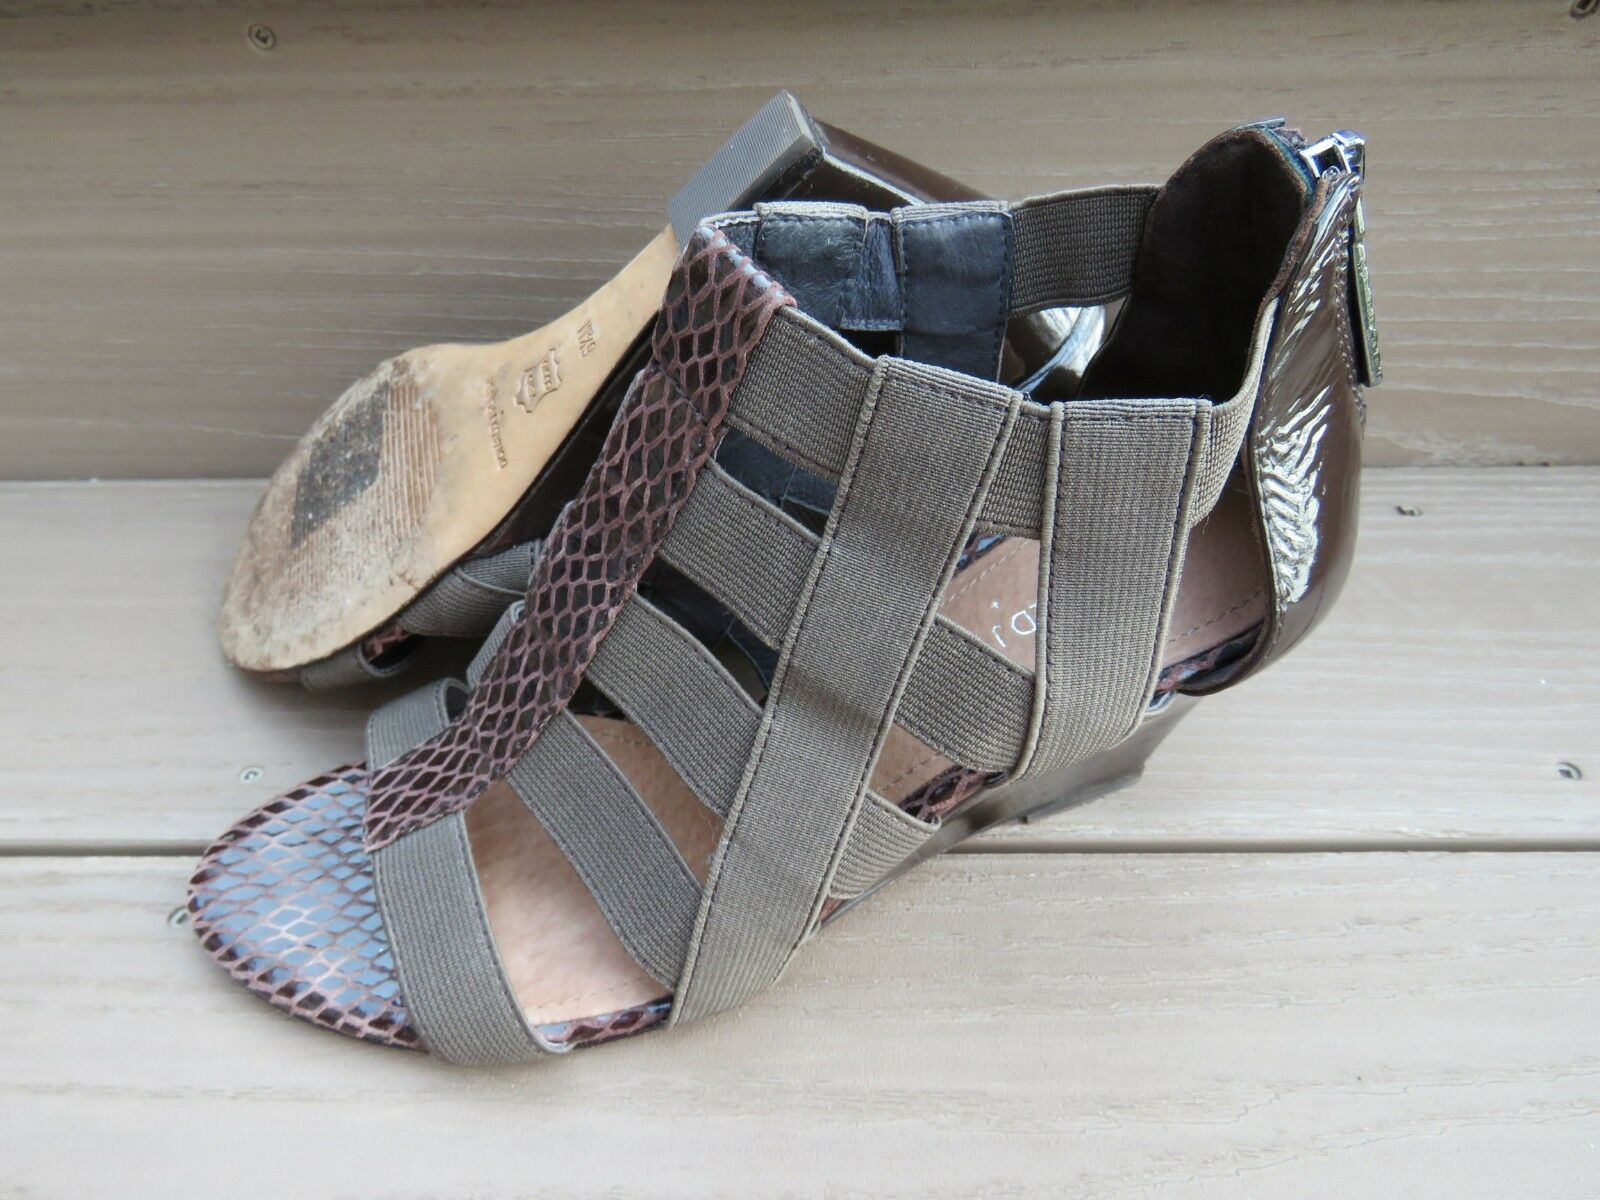 DONALD J PLINER Pira Brown Patent Strappy Wedge Sandals shoes Women's US 6.5